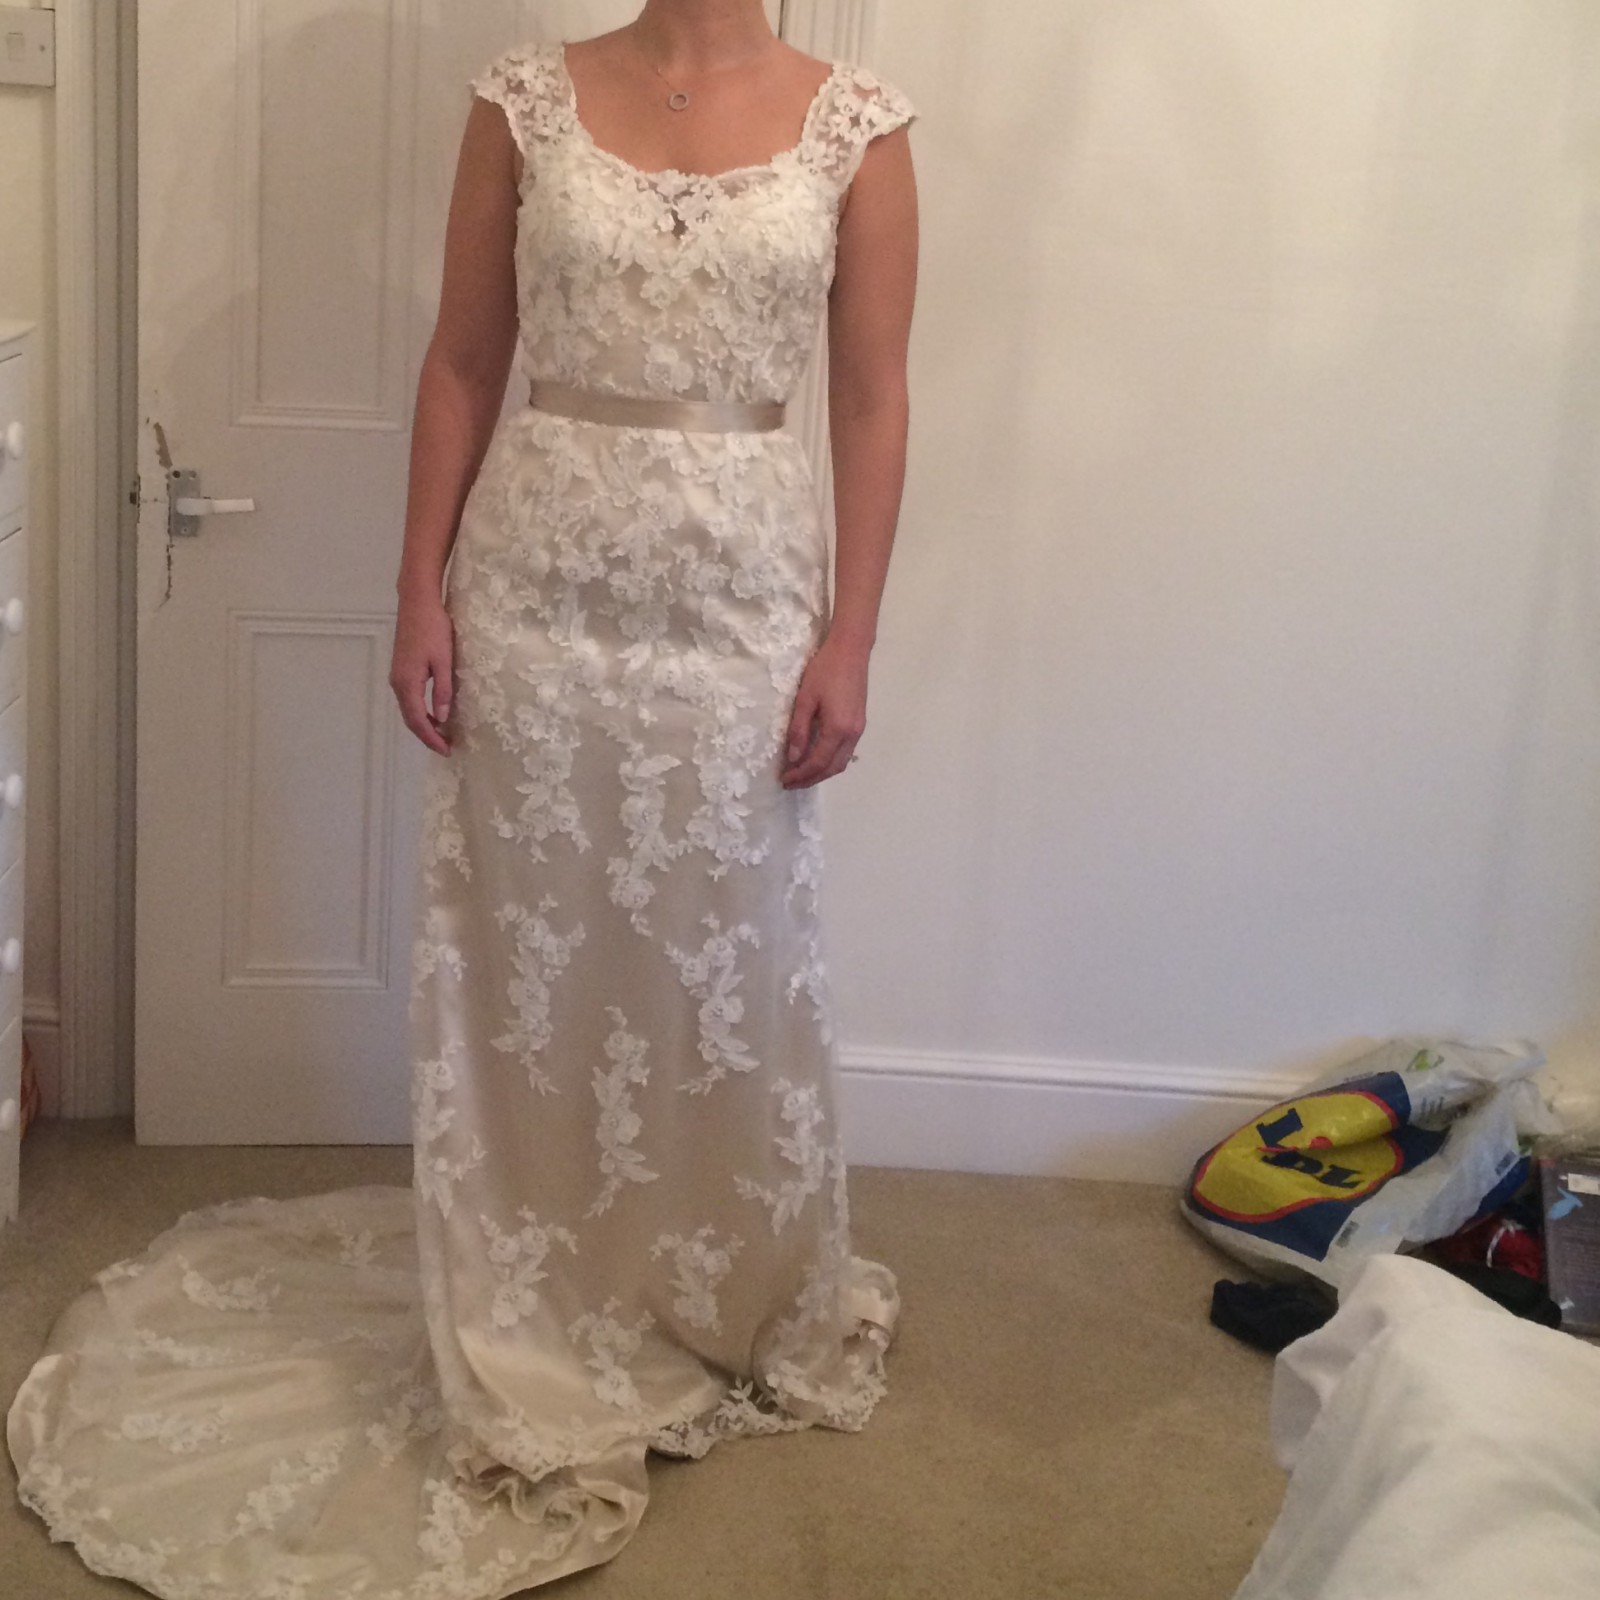 Henry Roth Second Hand Wedding Dress On Sale 82 Off: Justin Alexander 3785 Second Hand Wedding Dress On Sale 70